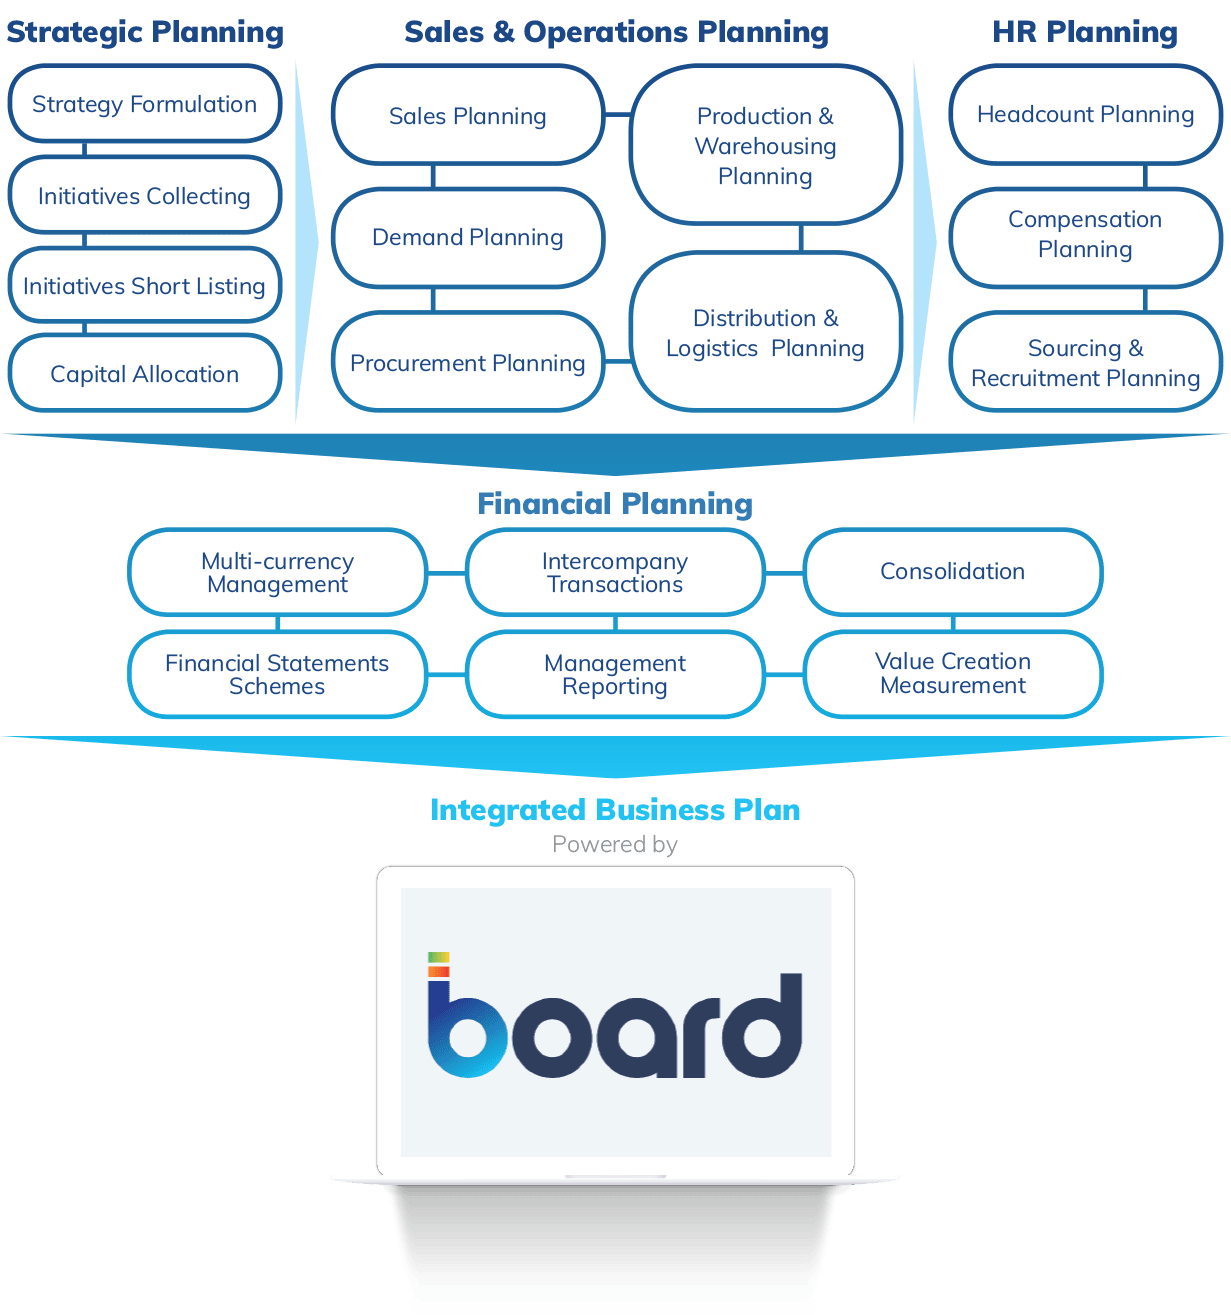 The benefits of Integrated Business Planning with Board